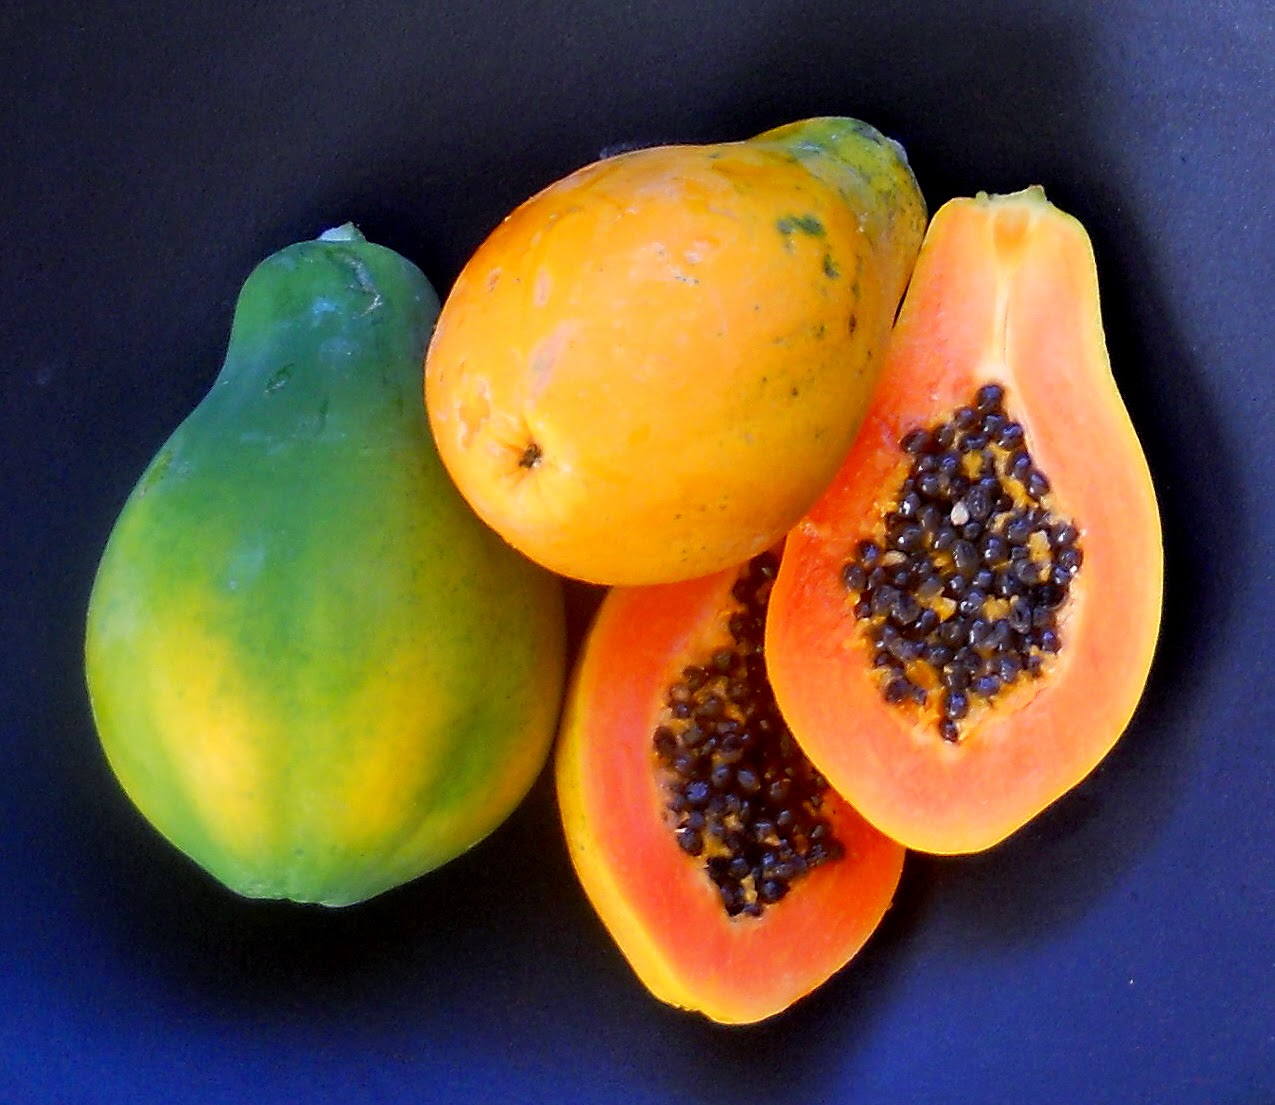 pollination in fruit Pollination is part of sexual reproduction in plants it describes how the pollen grains get to the female parts of a plant pollen grains, which contain the male gametes , need to get to where the female gamete(s) are.